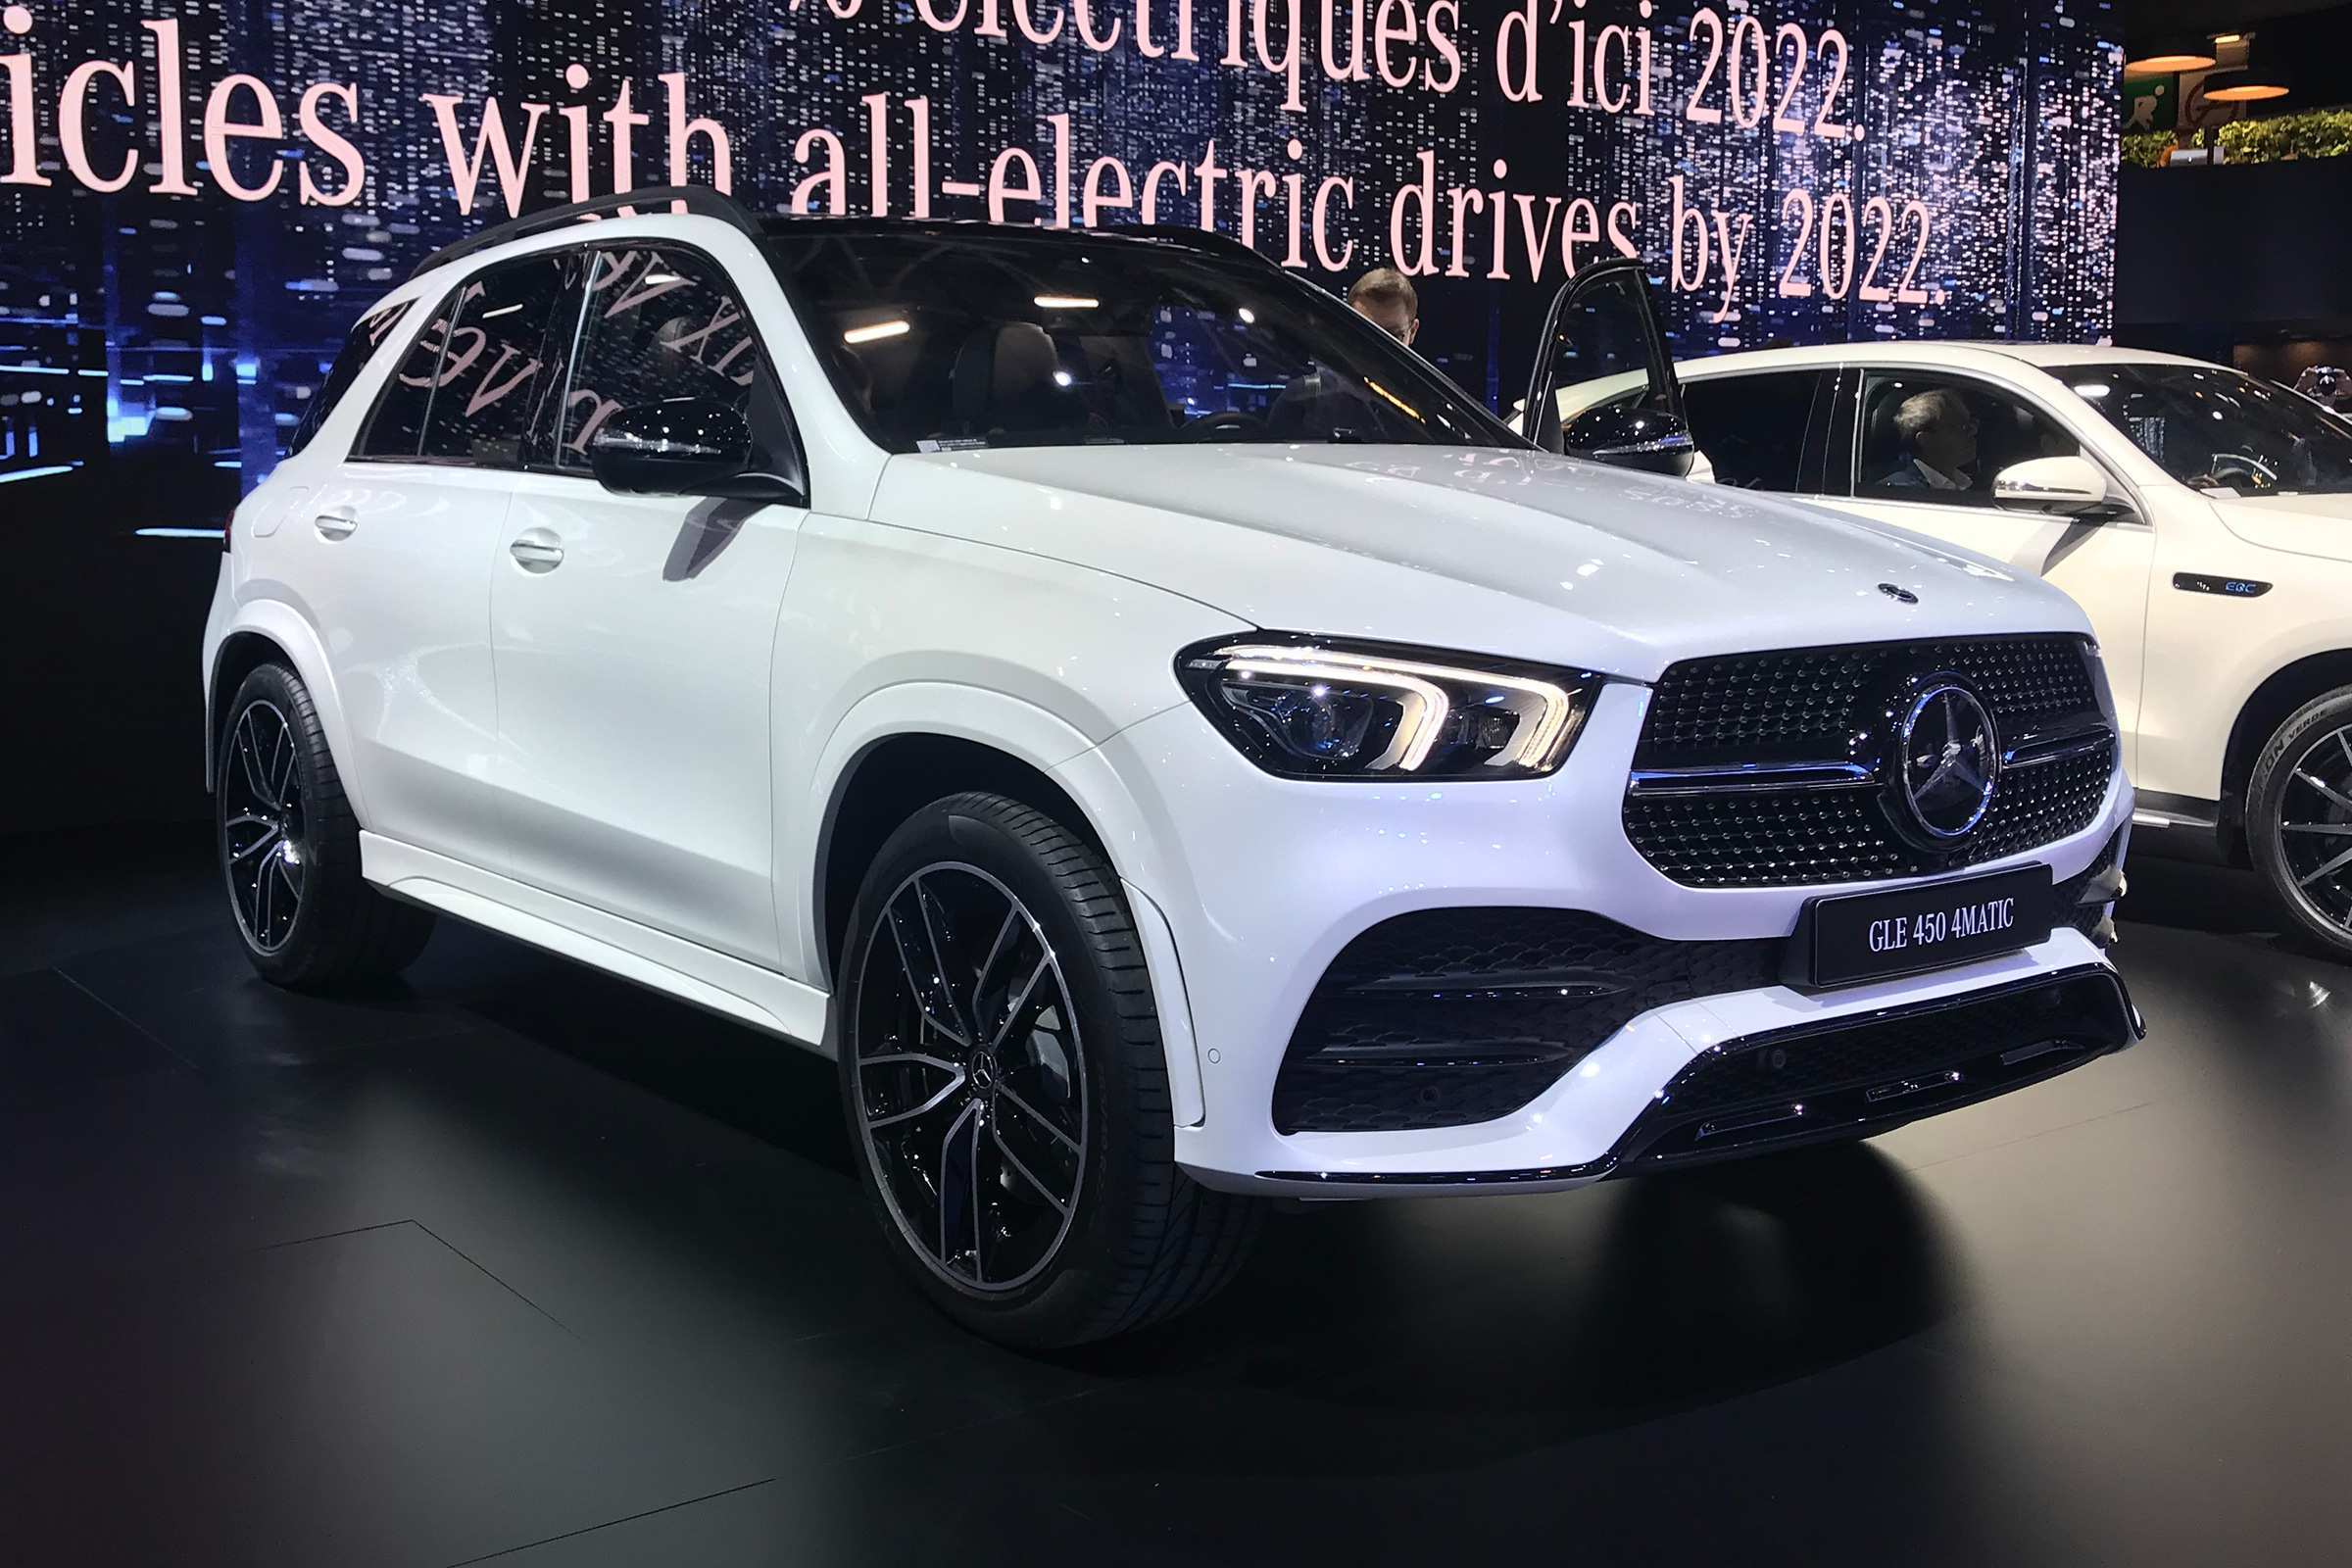 79 Concept of 2020 Mercedes Gle Vs BMW X5 Interior by 2020 Mercedes Gle Vs BMW X5